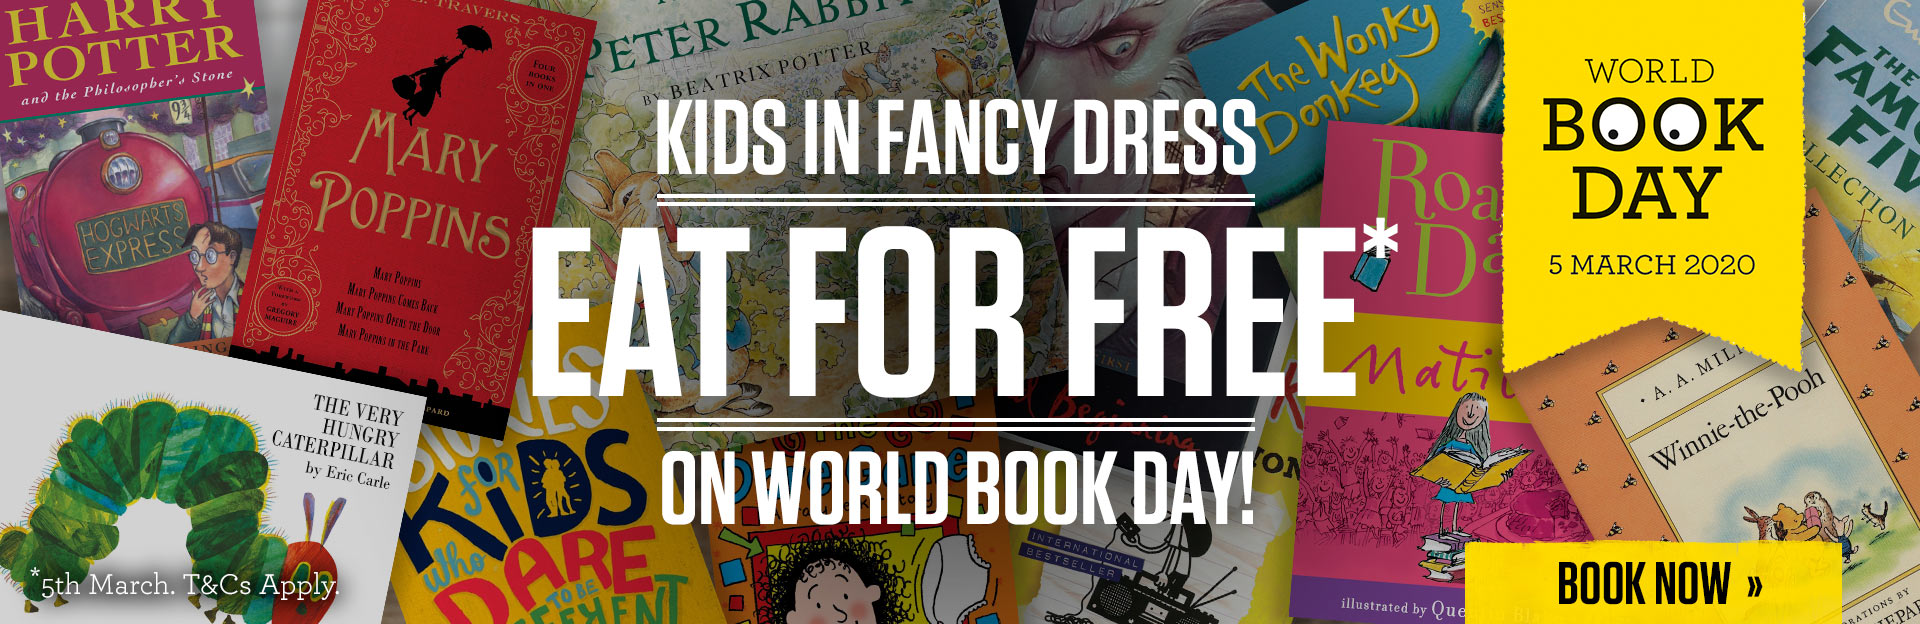 World Book Day at Sizzling Pubs